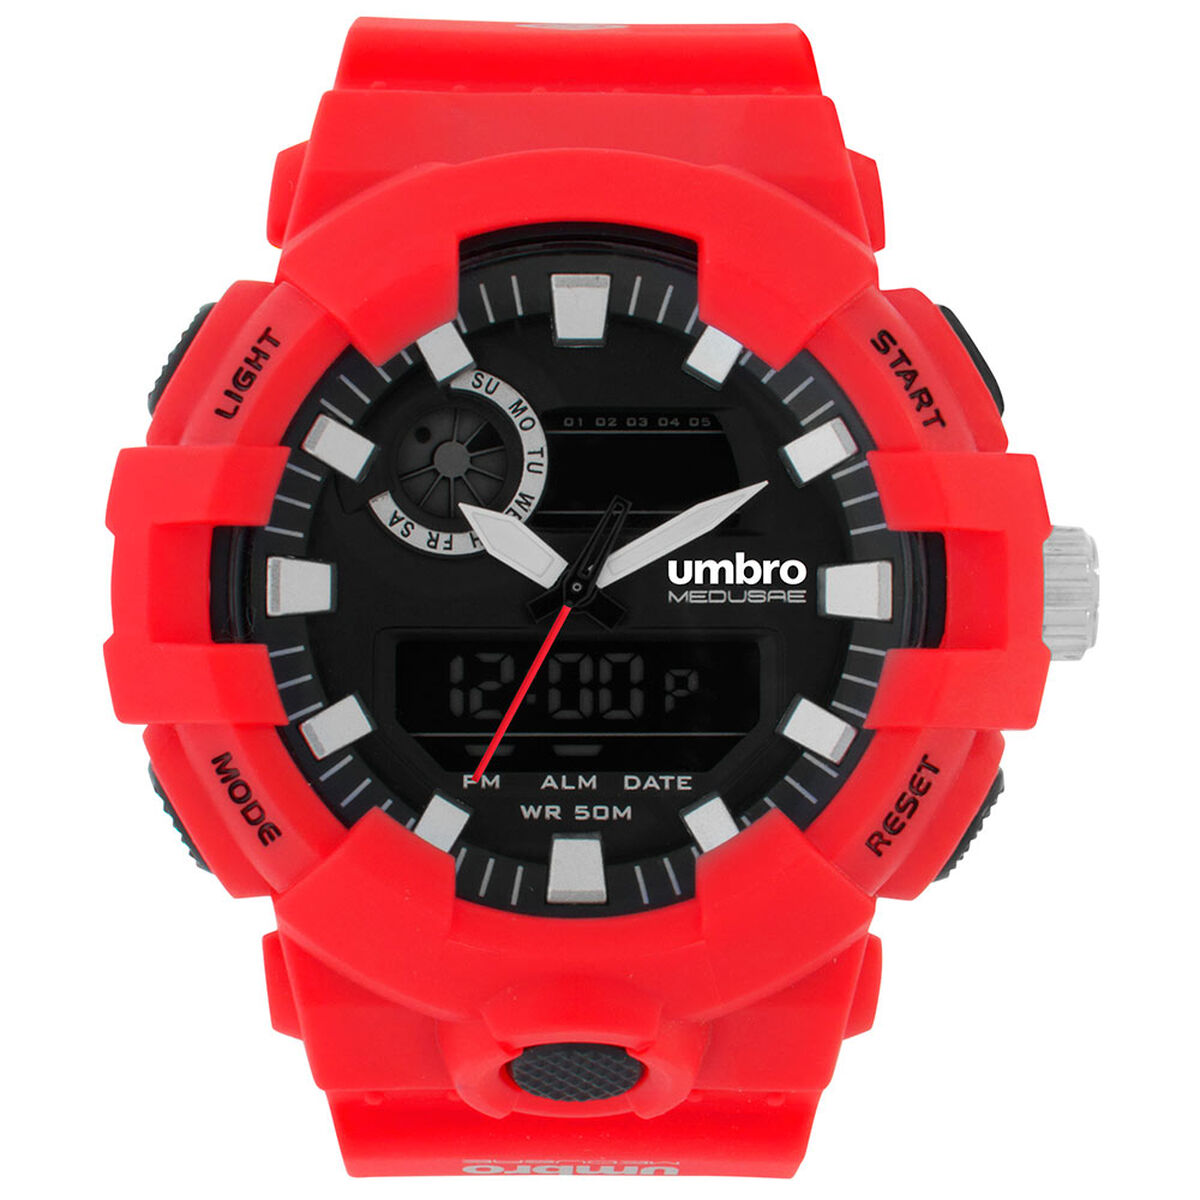 Reloj Digital Umbro UMB-069-3